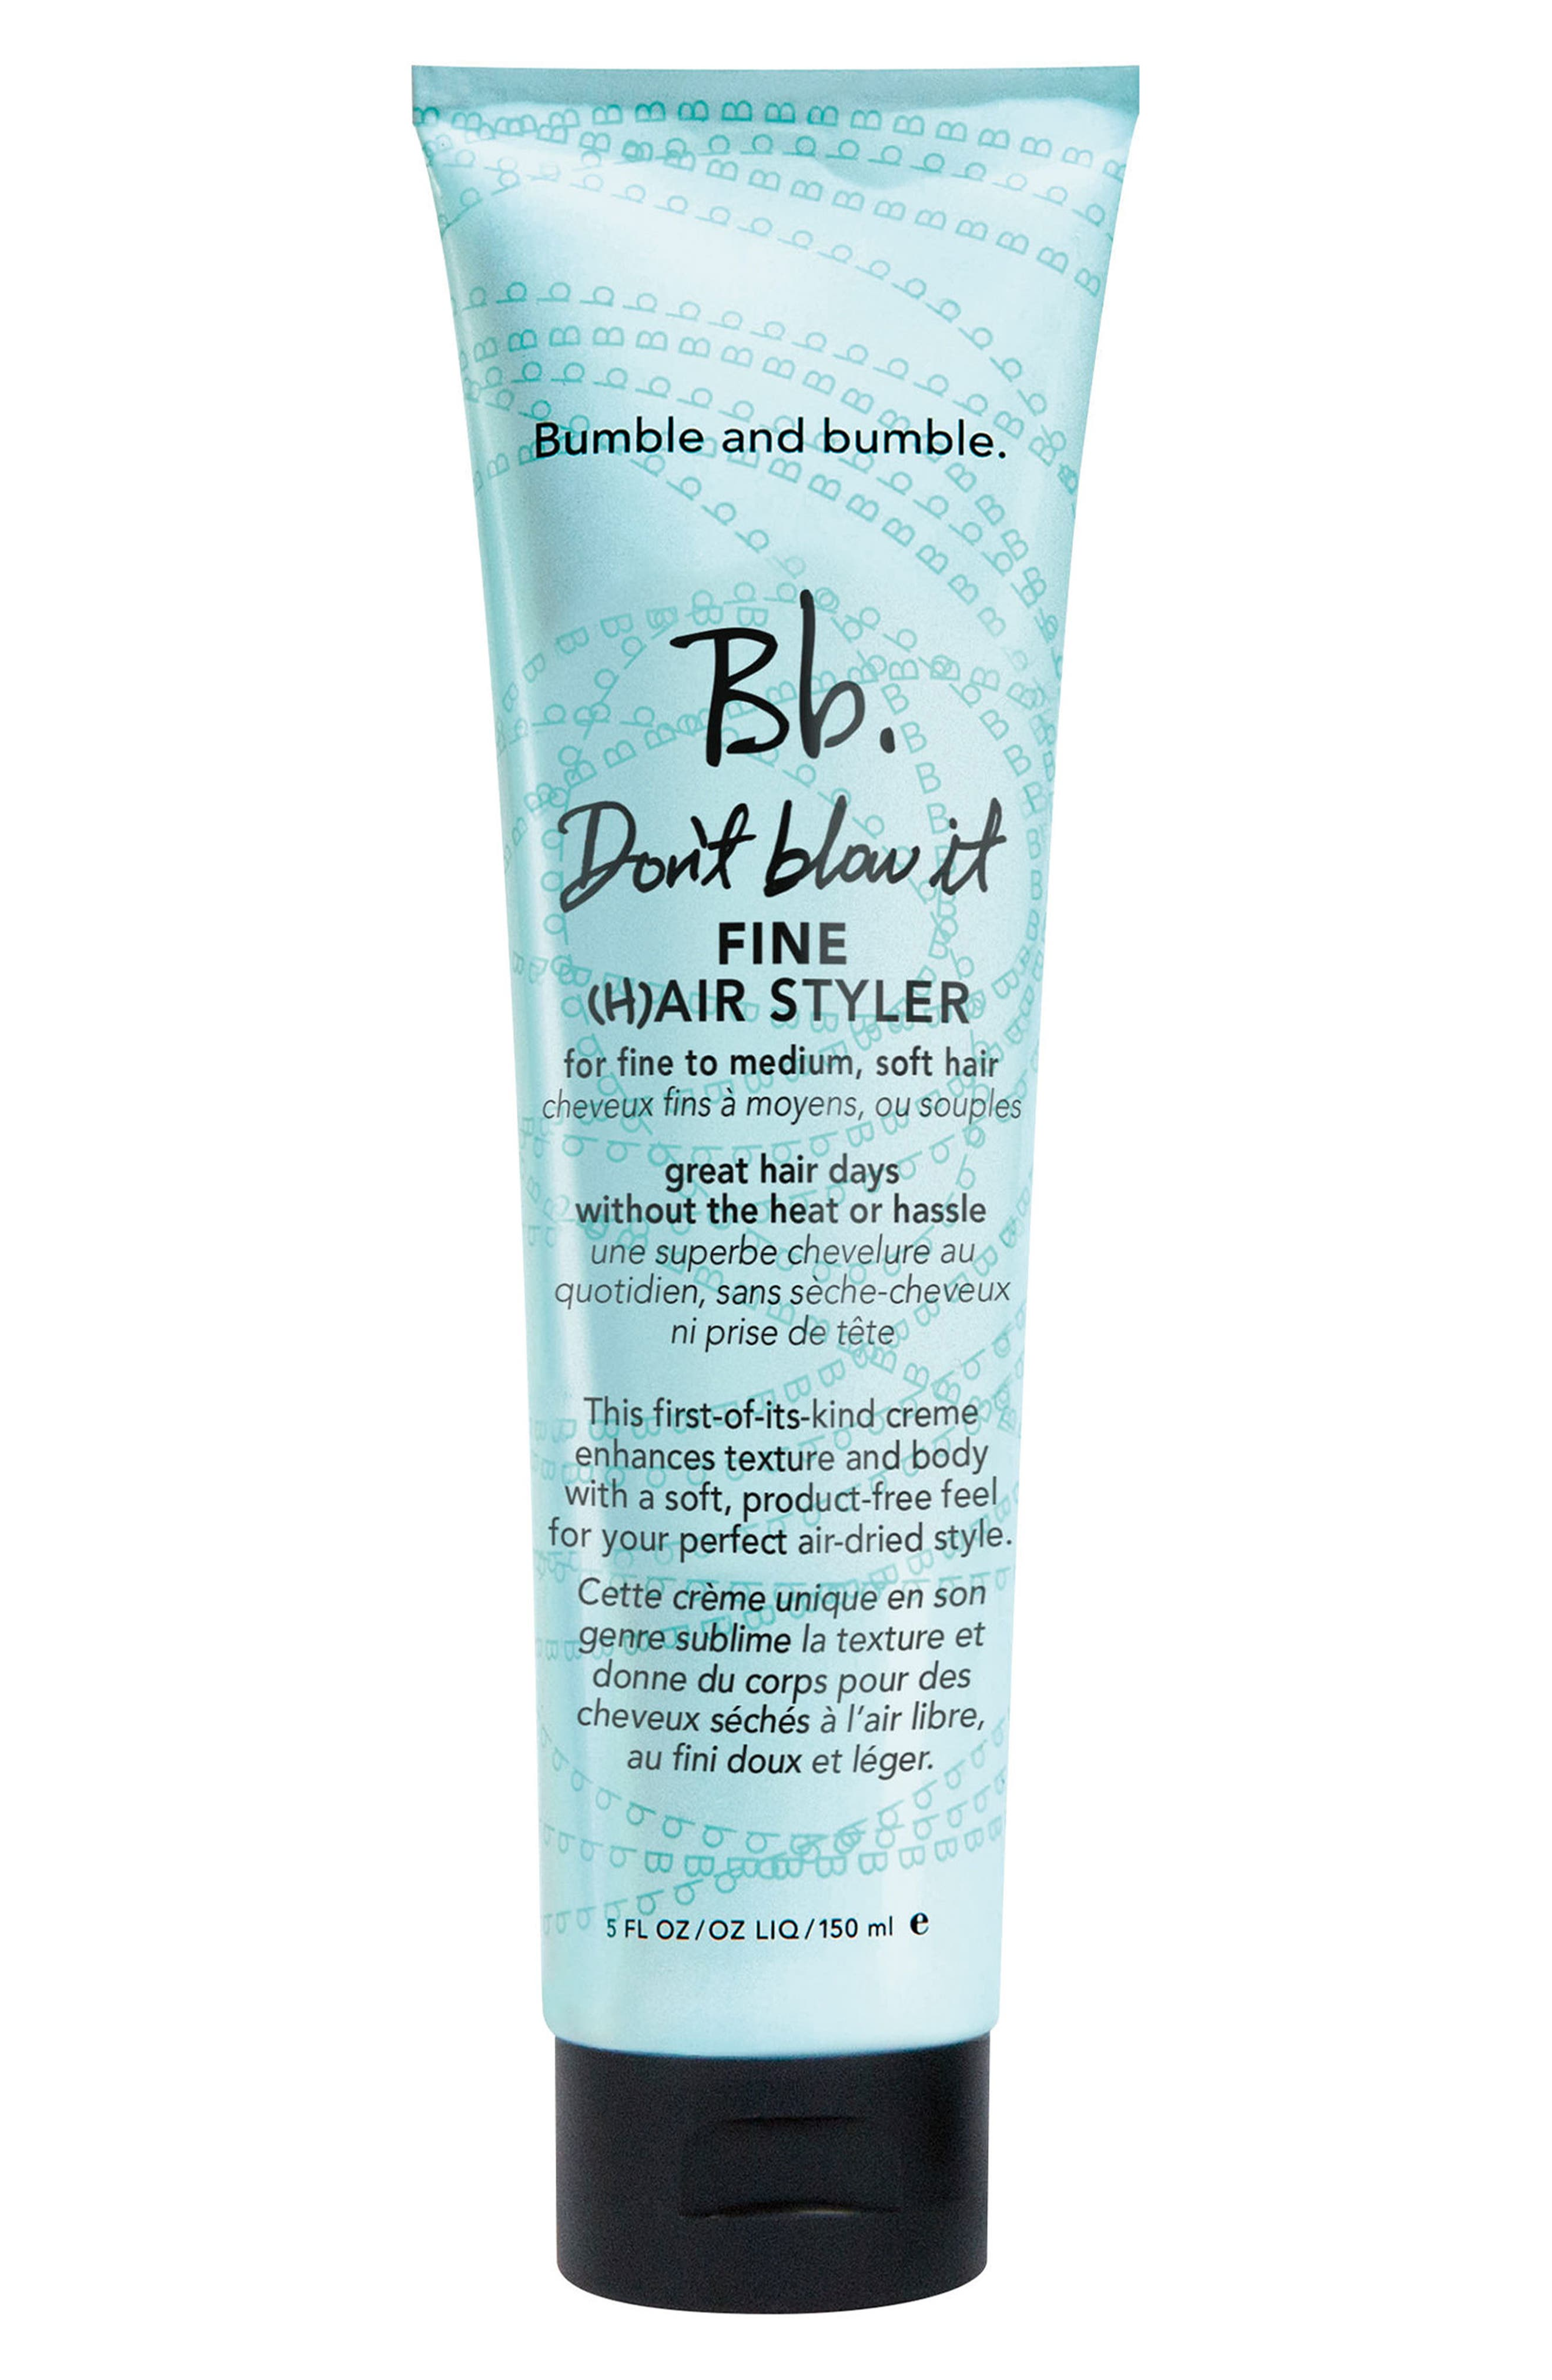 Main Image - Bumble and bumble Don't Blow It Fine Hair Styler